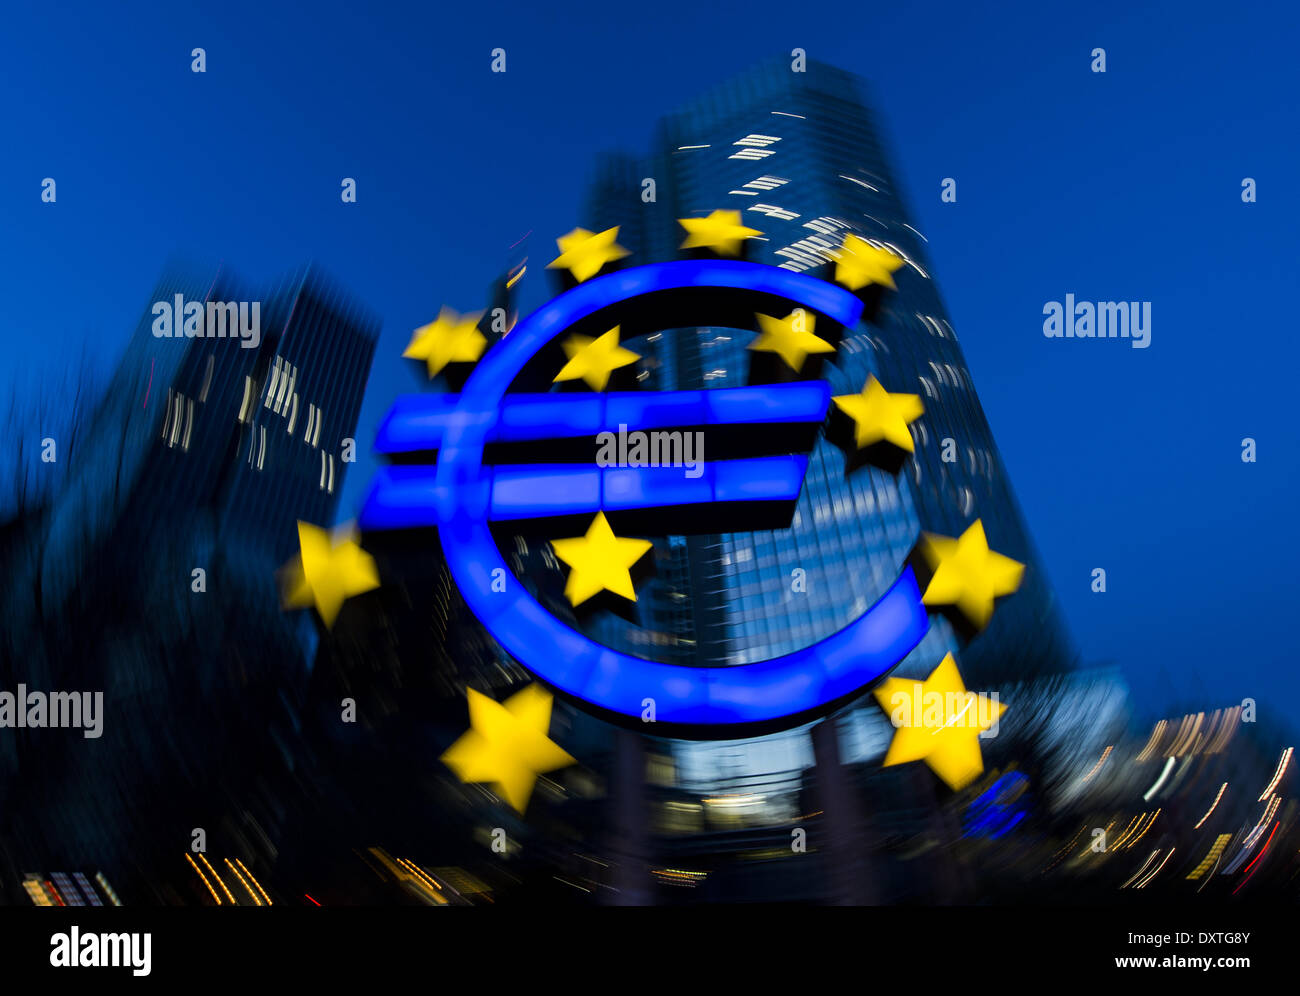 Frankfurt, Germany. 20th Mar, 2014. The stars of European Union (EU) membership sit on a euro sign sculpture outside the headquarters of the European Central Bank (ECB) in Frankfurt, Germany, 20 March 2014. © dpa/Alamy Live News - Stock Image